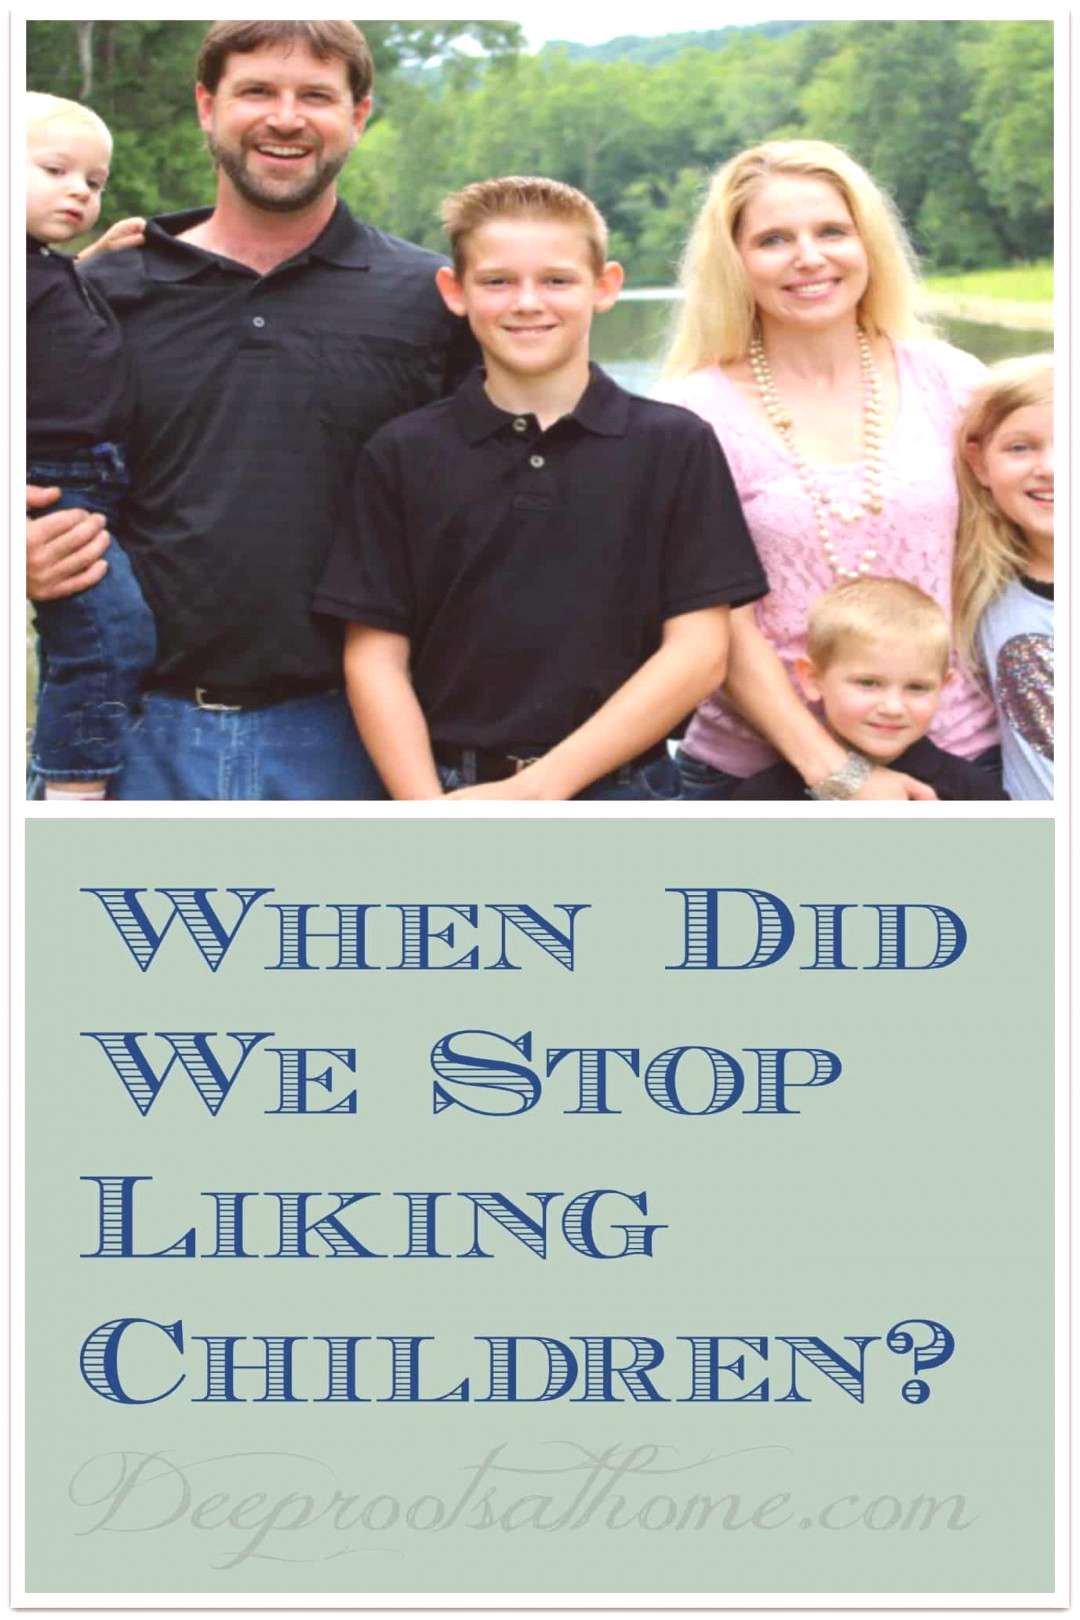 Whenever Did We Stop Liking Children? When Did We Stop Liking Children? The Platt family.